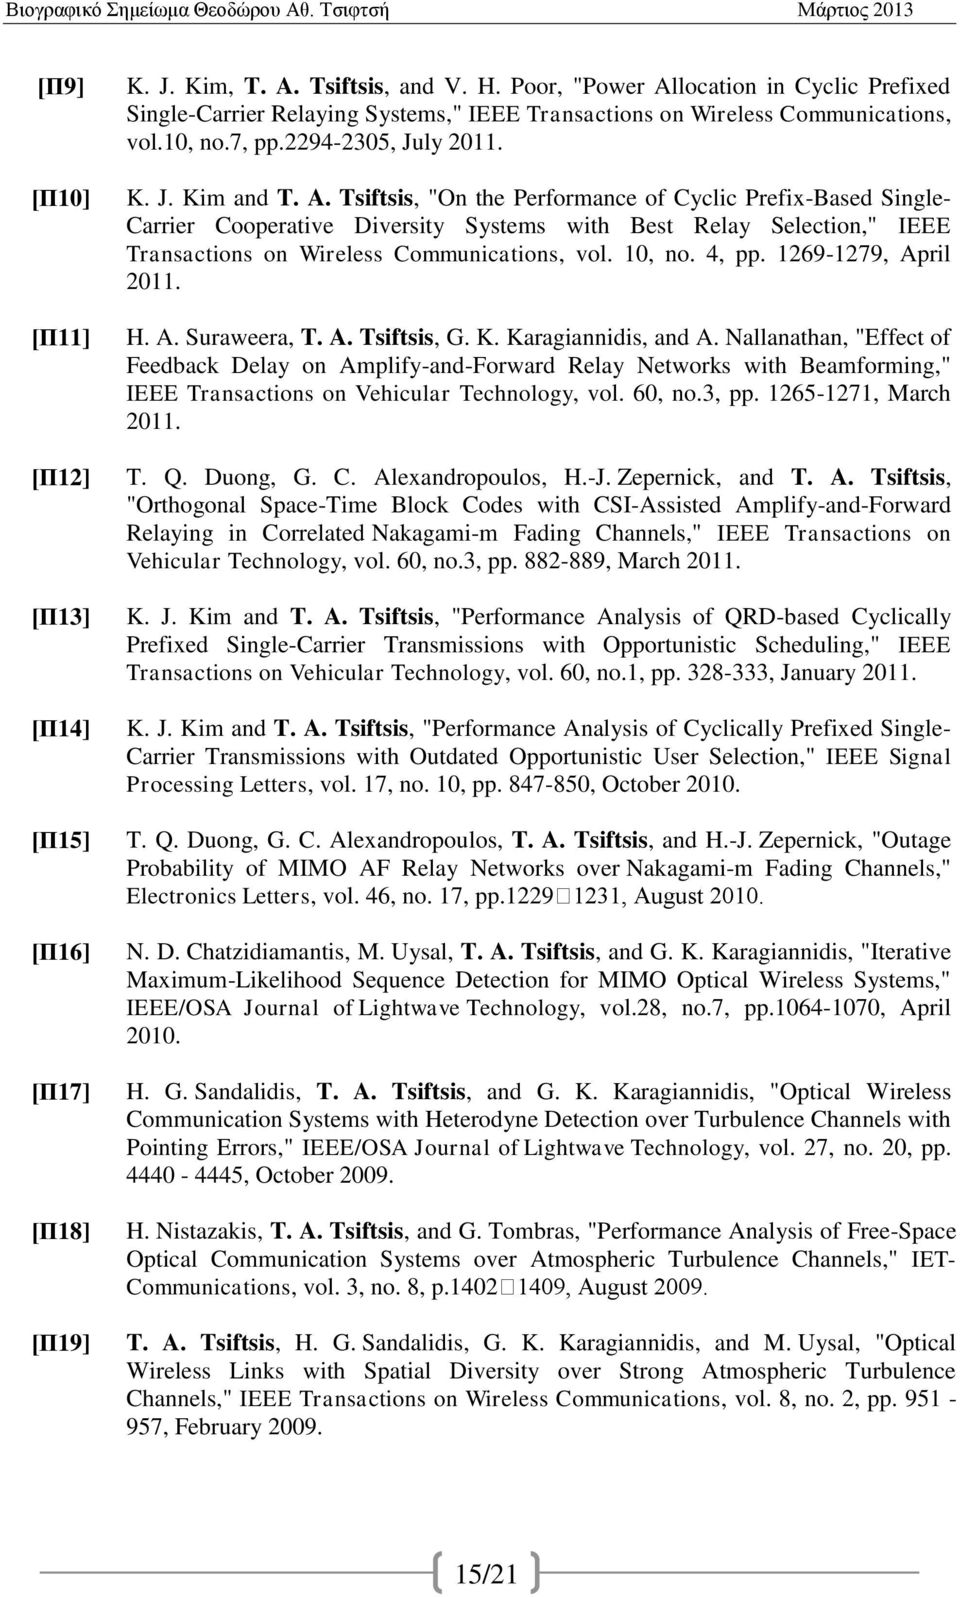 10, no. 4, pp. 1269-1279, April 2011. H. A. Suraweera, T. A. Tsiftsis, G. K. Karagiannidis, and A.